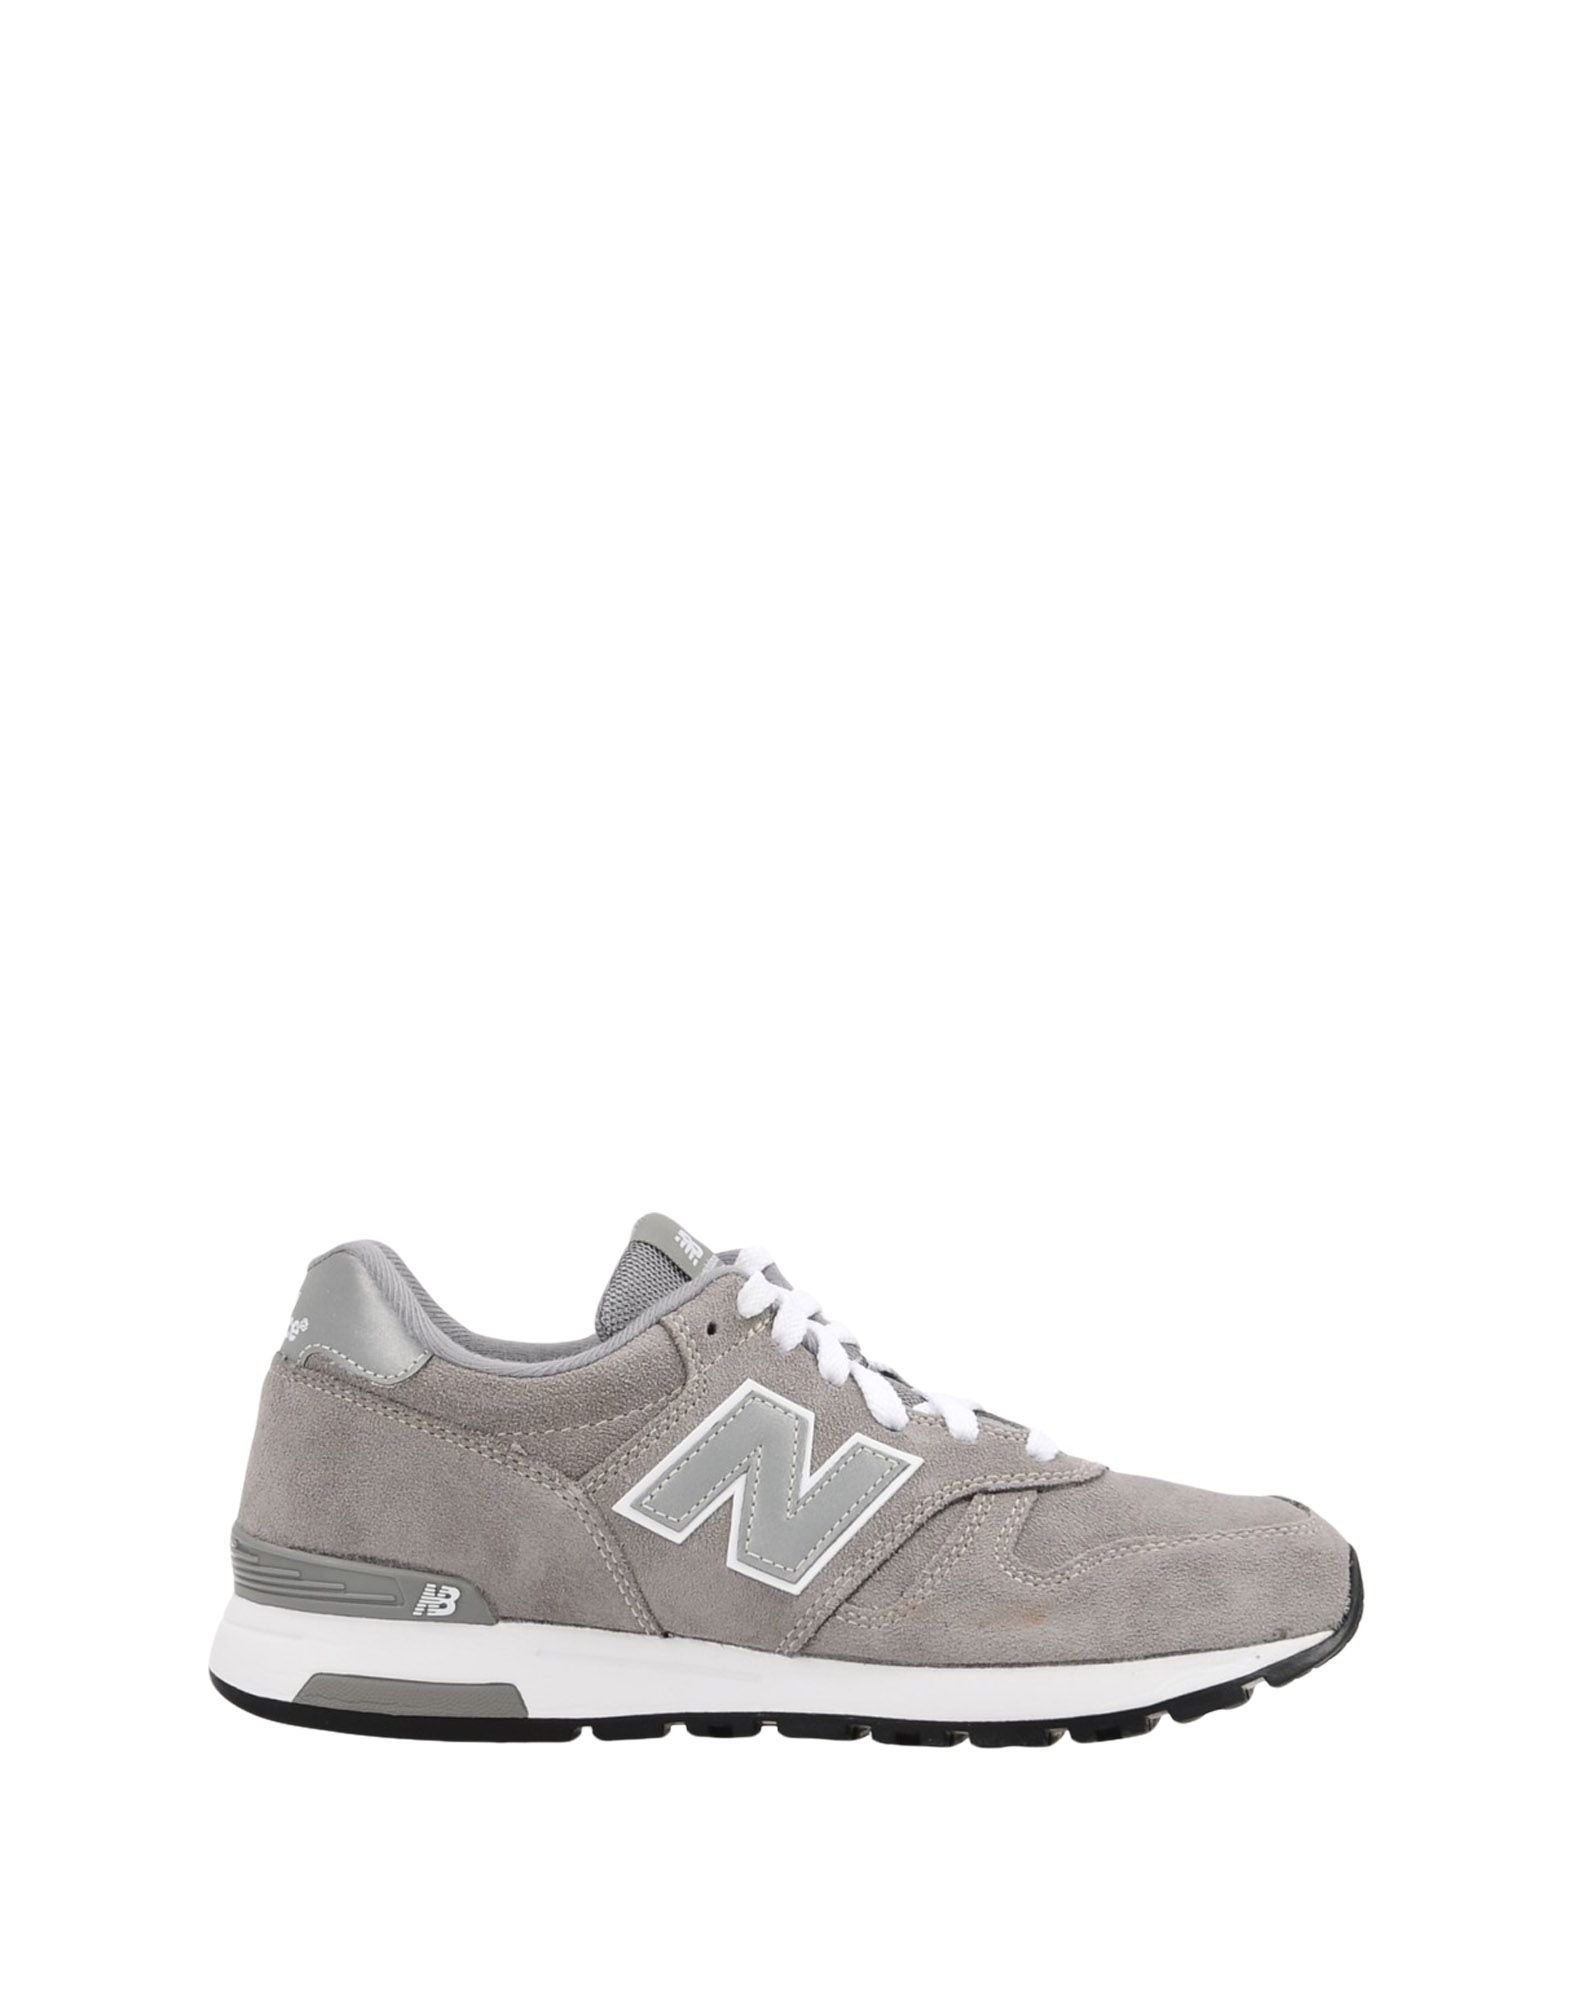 Sneakers New Balance 565 Full Suede - Homme - Sneakers New Balance sur